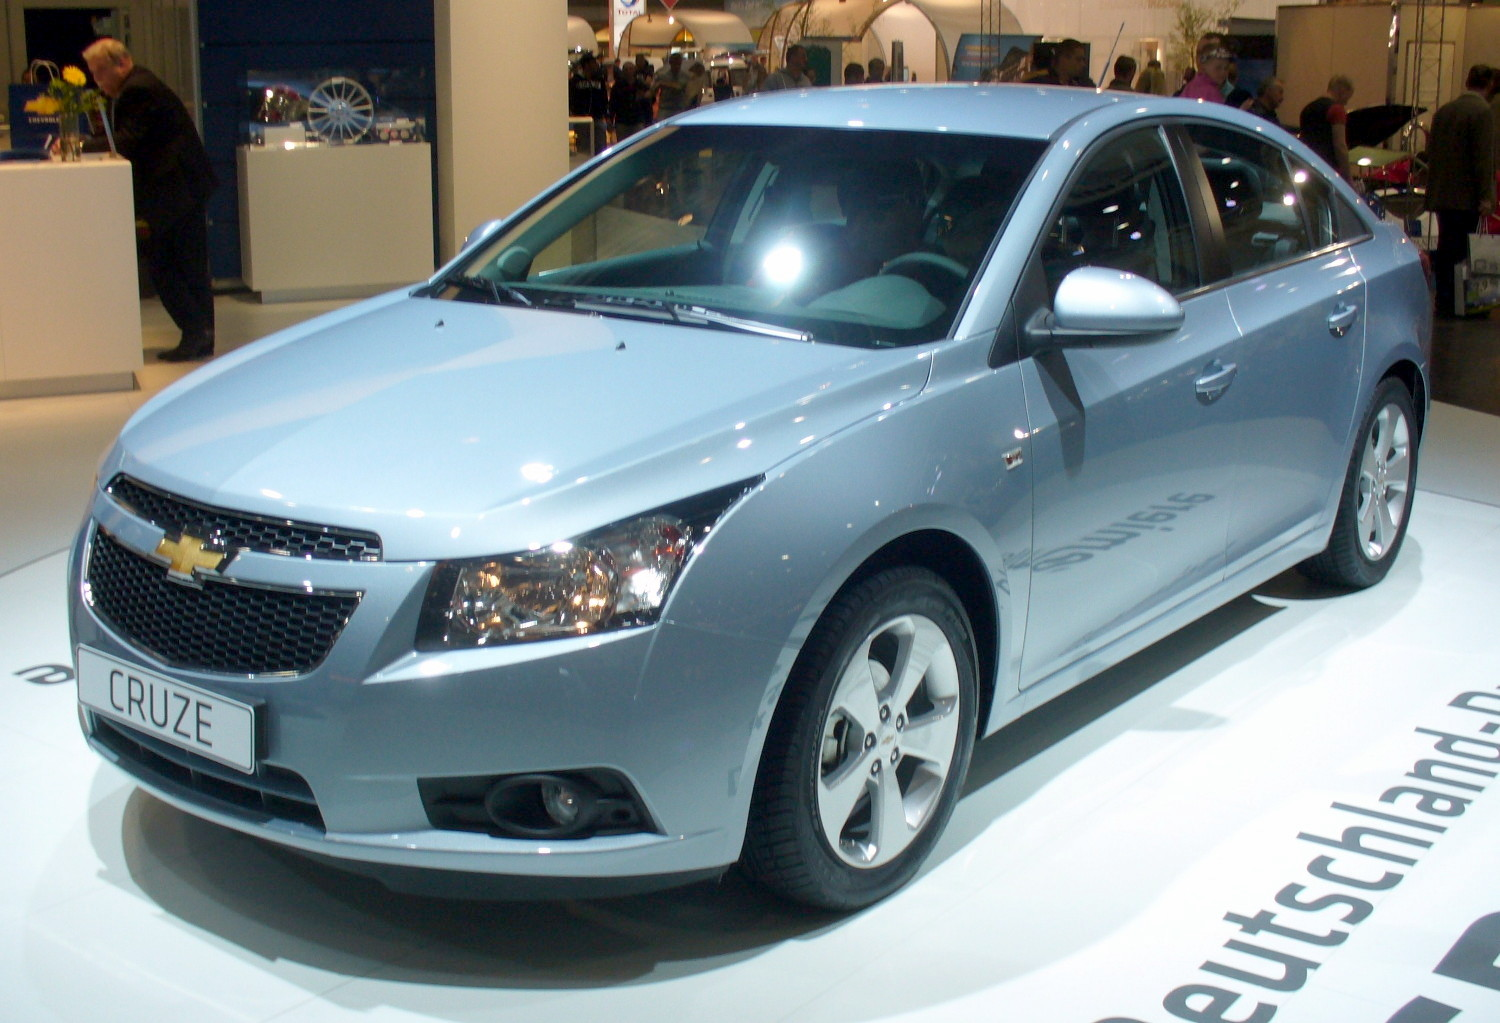 chevrolet cruze images #4